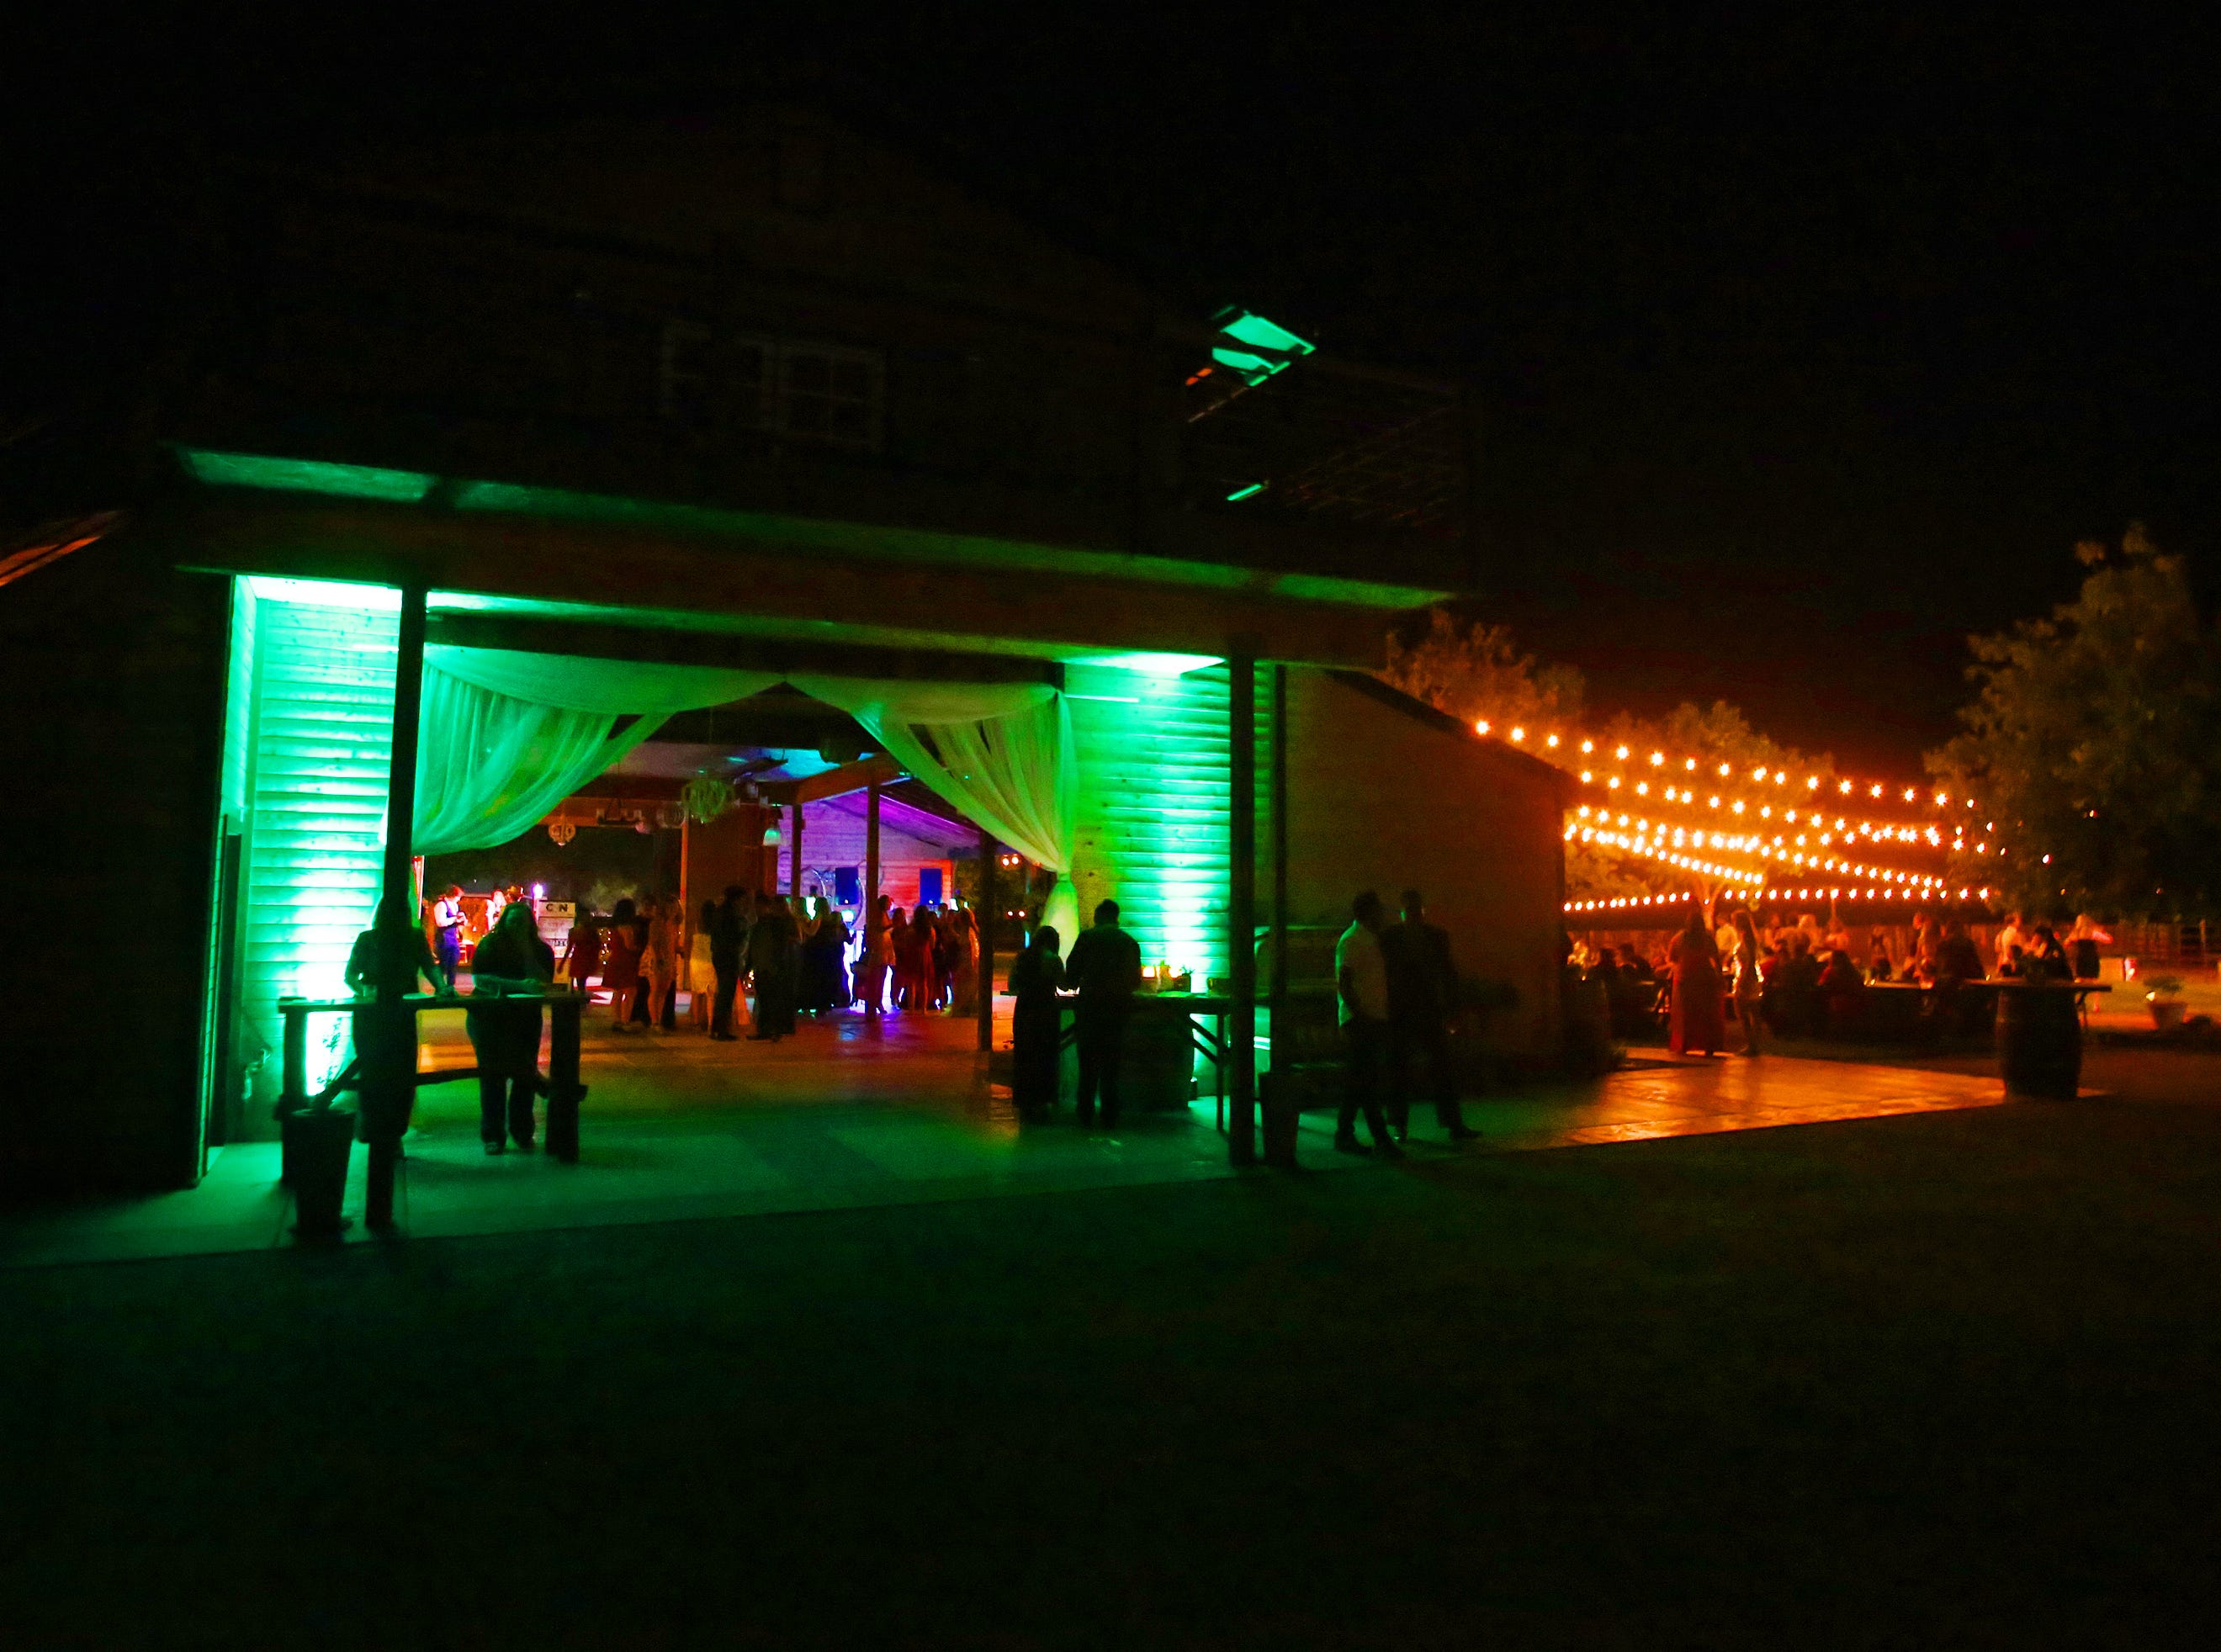 The Cottonwood Barn served as a backdrop to this year's  this year's Exeter Union High School prom Saturday, May 4, 2019 in Woodlake, Calif.